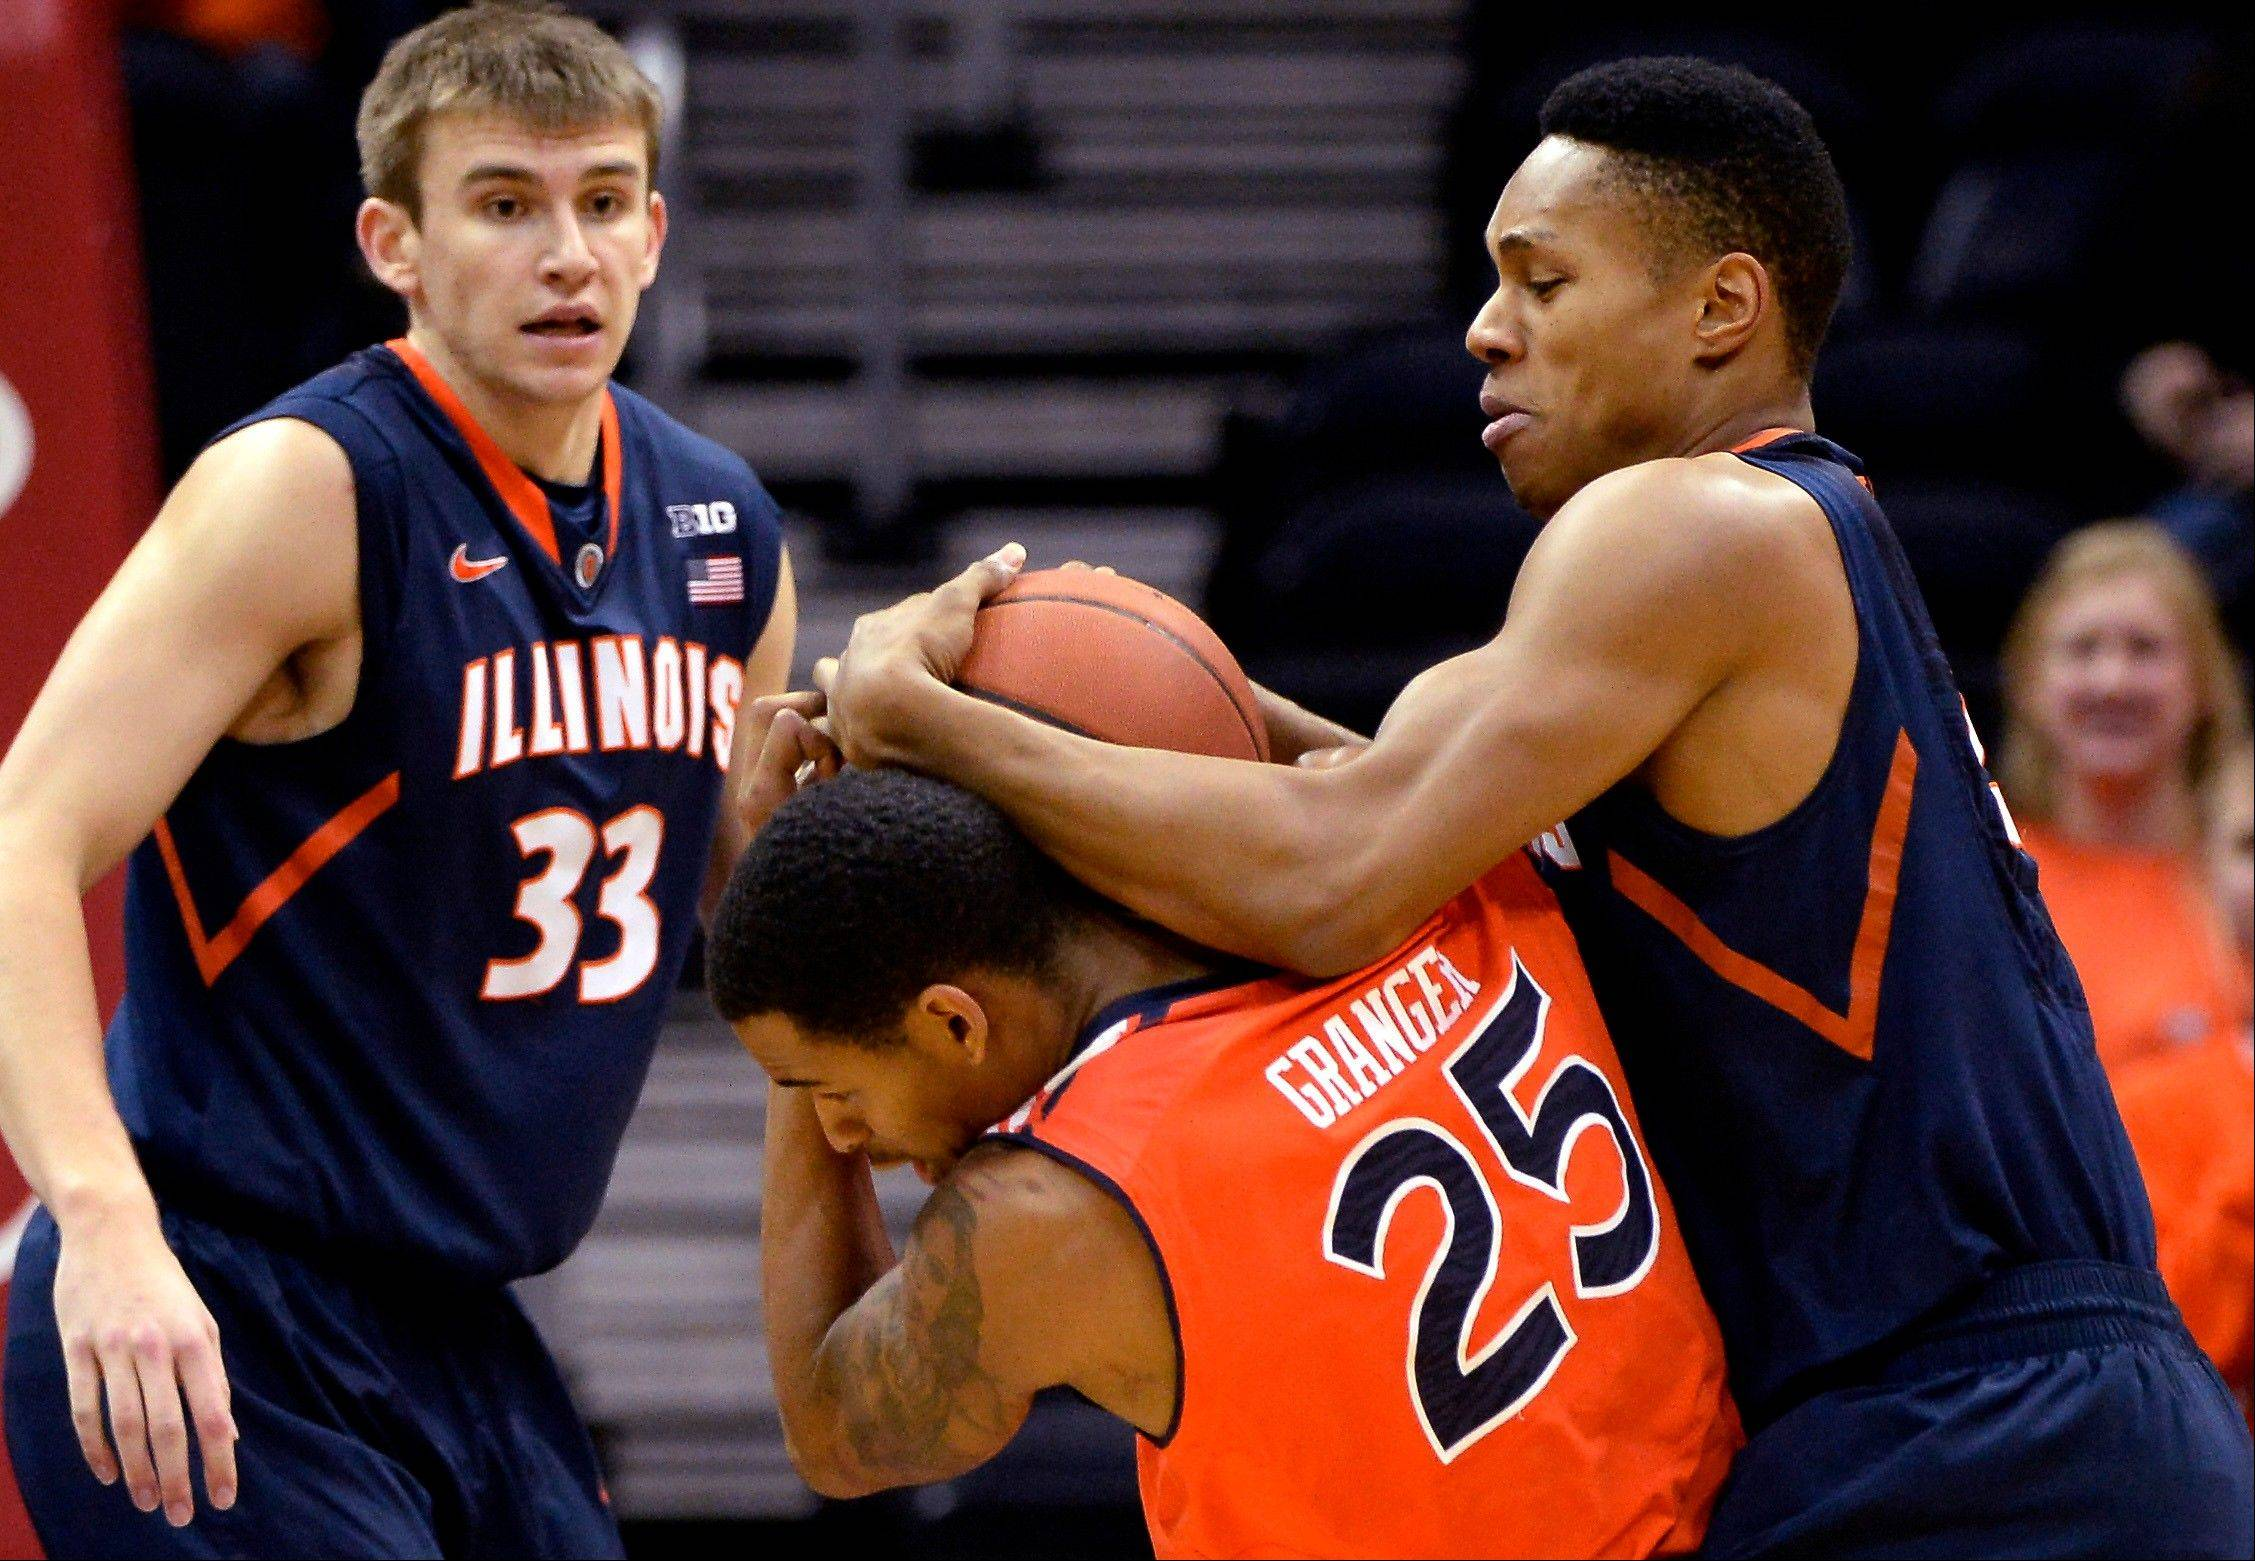 Auburn's Jordan Granger (25) and Illinois' Joseph Bertrand (2) battle for the rebound as Illinois' Jon Ekey (33) looks on in the first half of an NCAA college basketball game on Sunday, Dec. 8, 2013, in Atlanta.